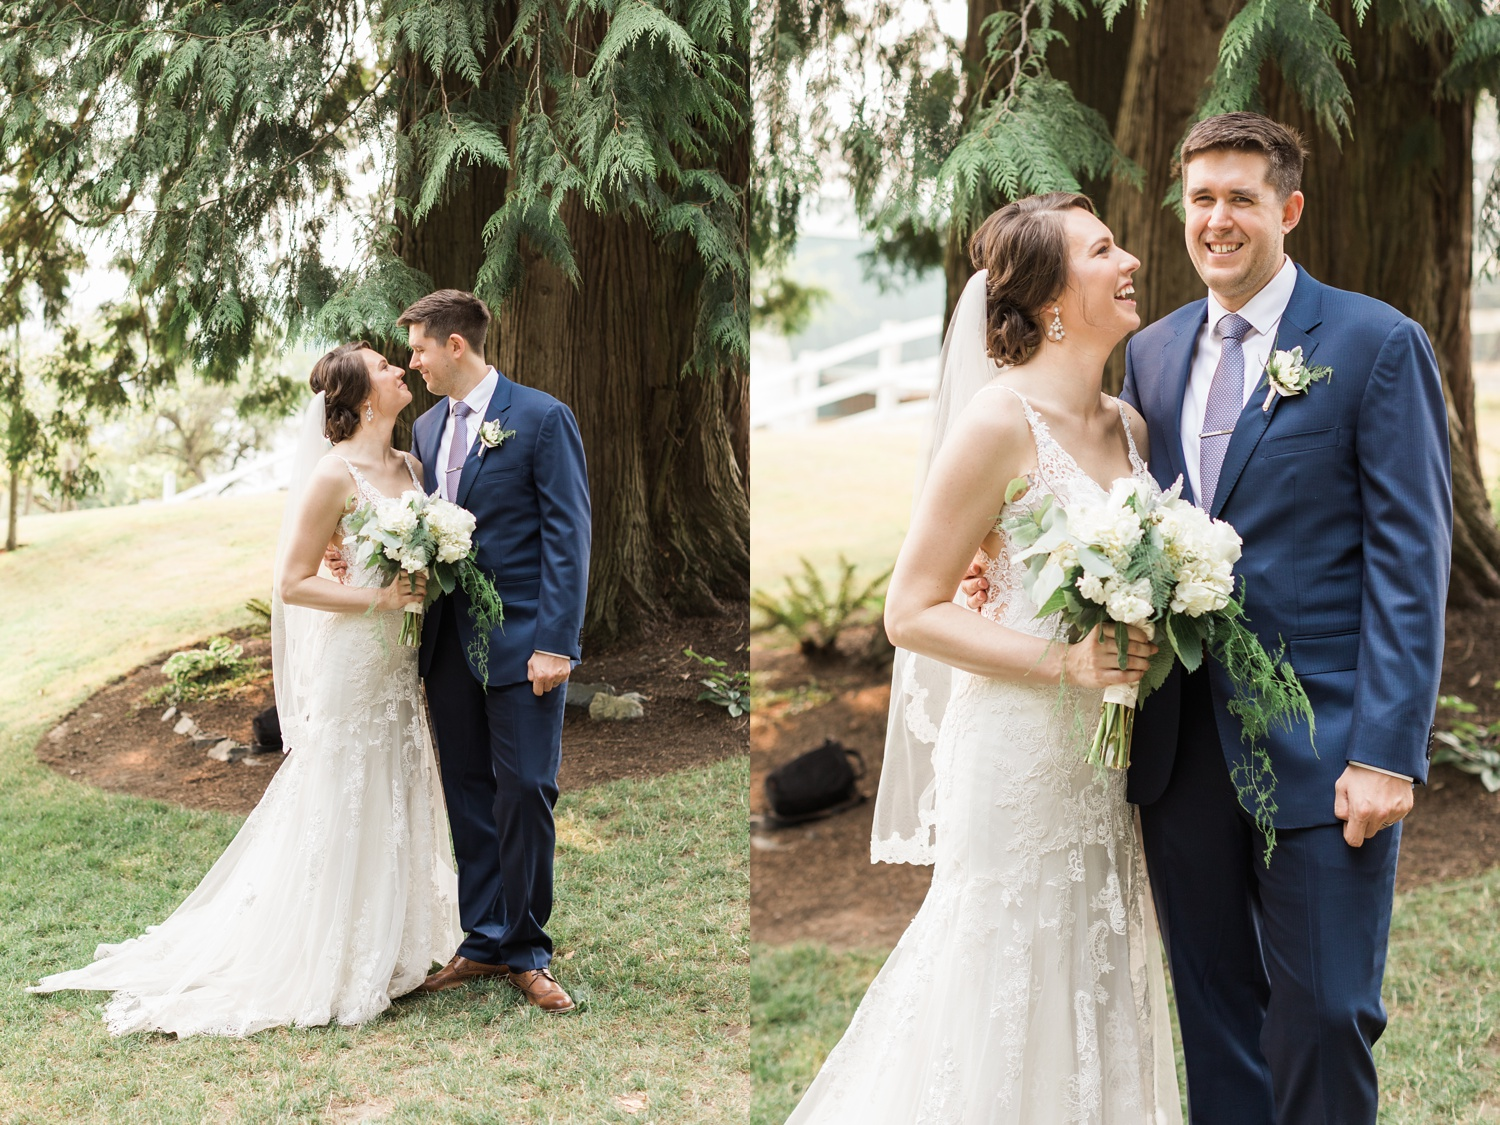 A bride and groom lovingly gaze at each other before their outdoor wedding at Chateau Lill in Woodinville, a wedding venue near Seattle, WA.   Joanna Monger Photography   Seattle & Snohomish Photographer